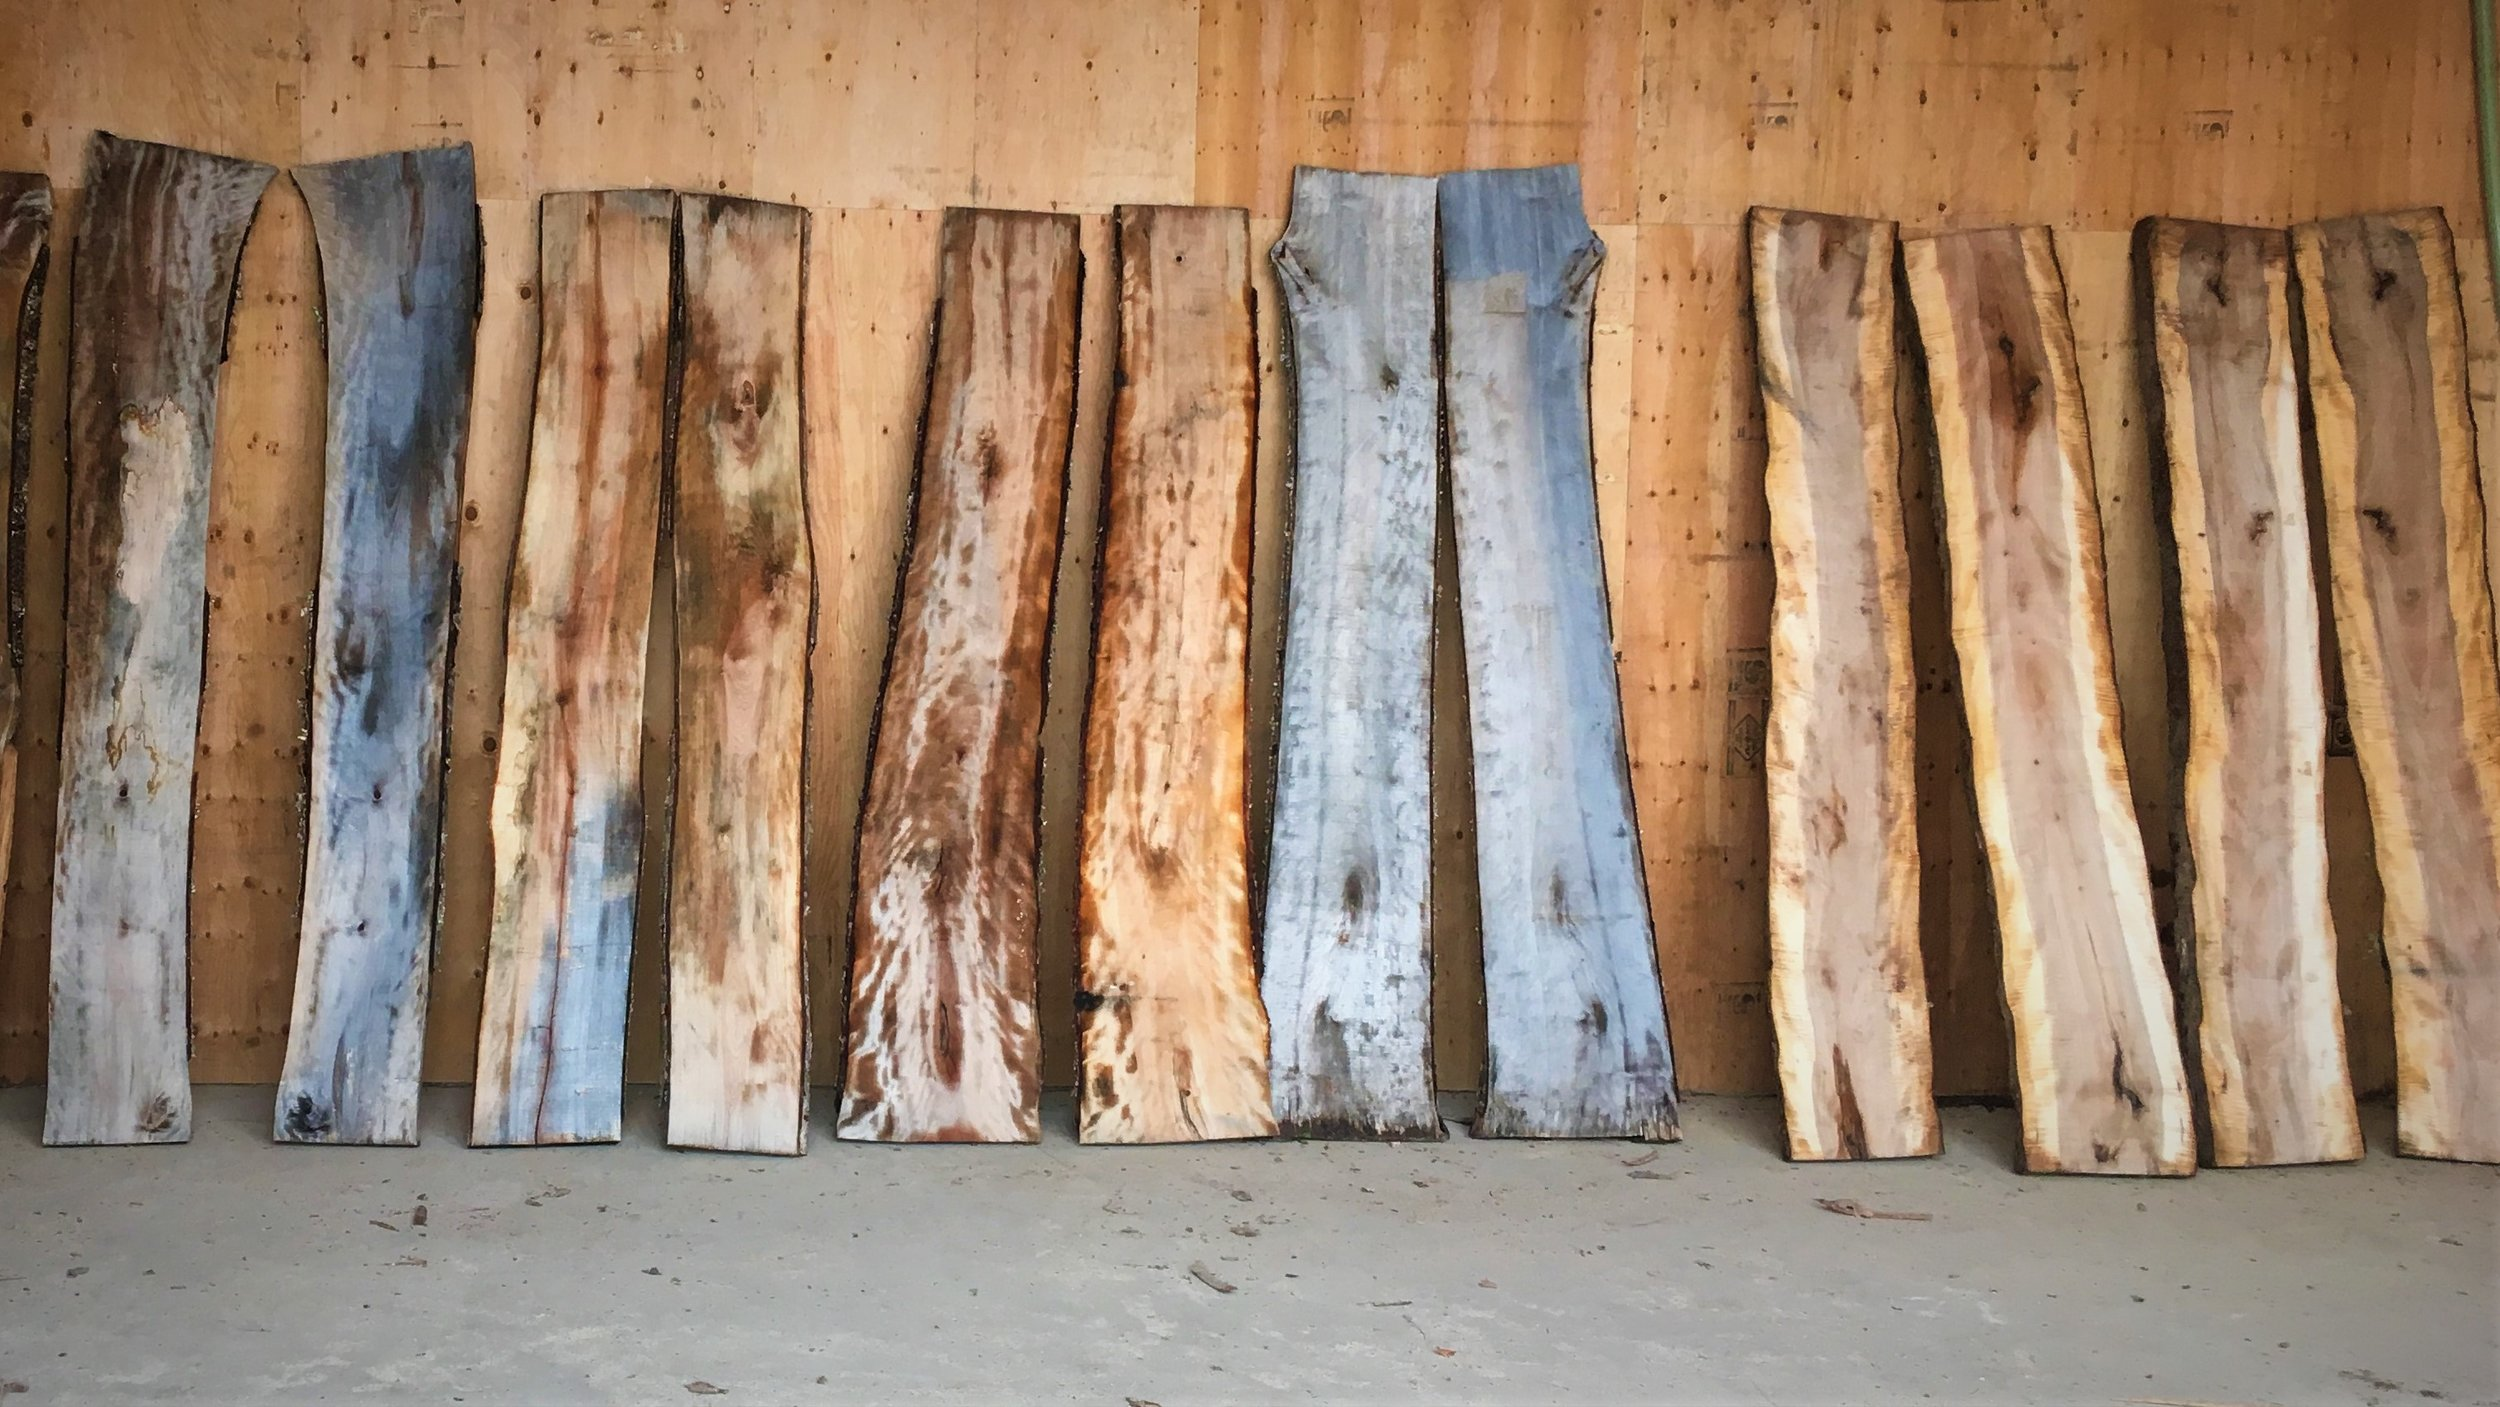 NOW IN: KILN DRIED - LIVE EDGE SLABWOOD